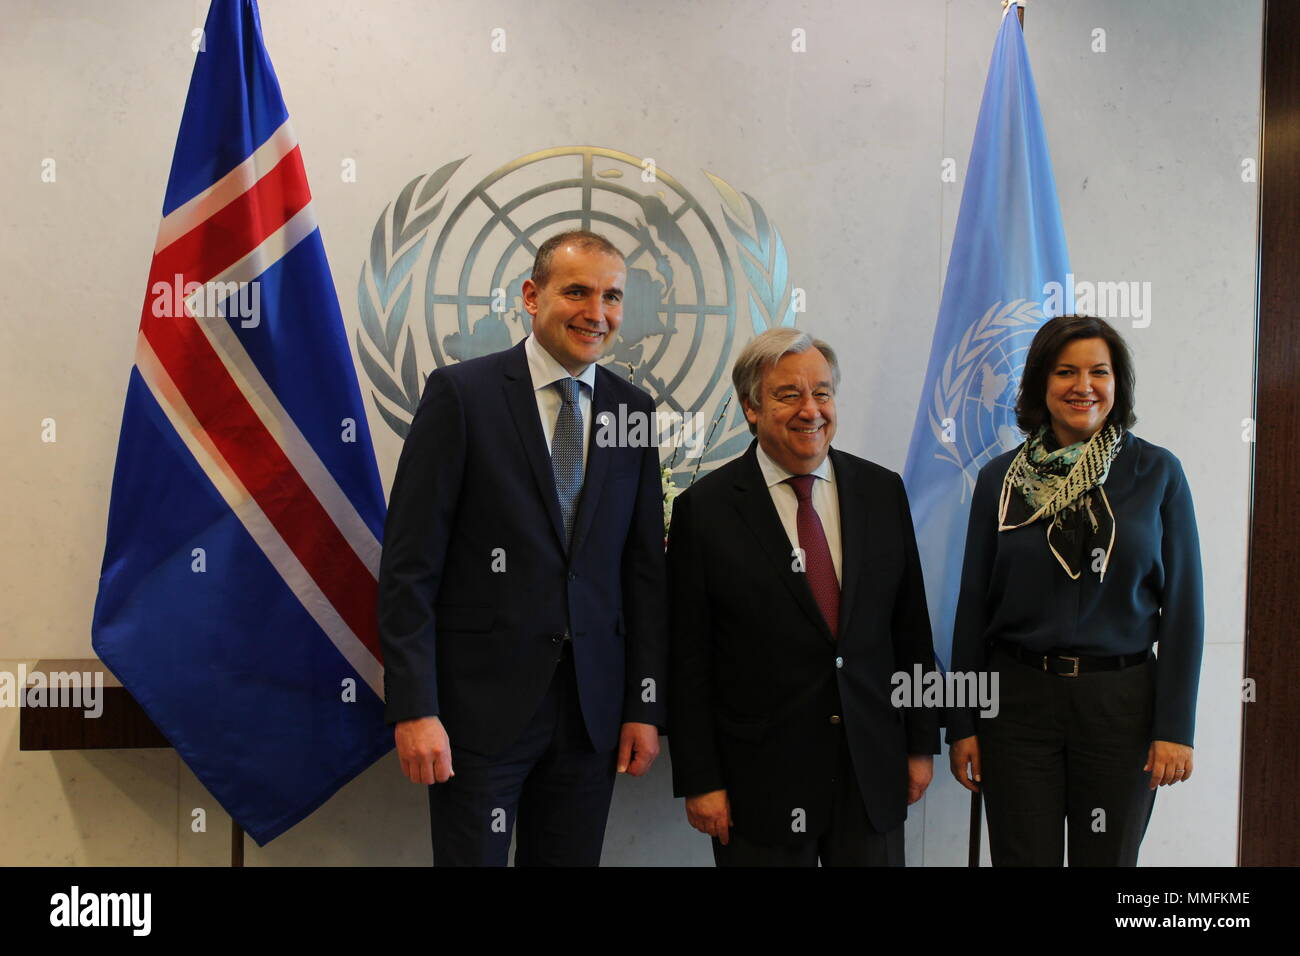 UN, New York, USA. 11th May, 2018. Iceland's President Gudni Th. Johannesson and First Lady Eliza Reid met UN Sec Gen Antonio Guterres and signed UN Visitors' Book. Photo: Matthew Russell Lee / Inner City PressStock Photo